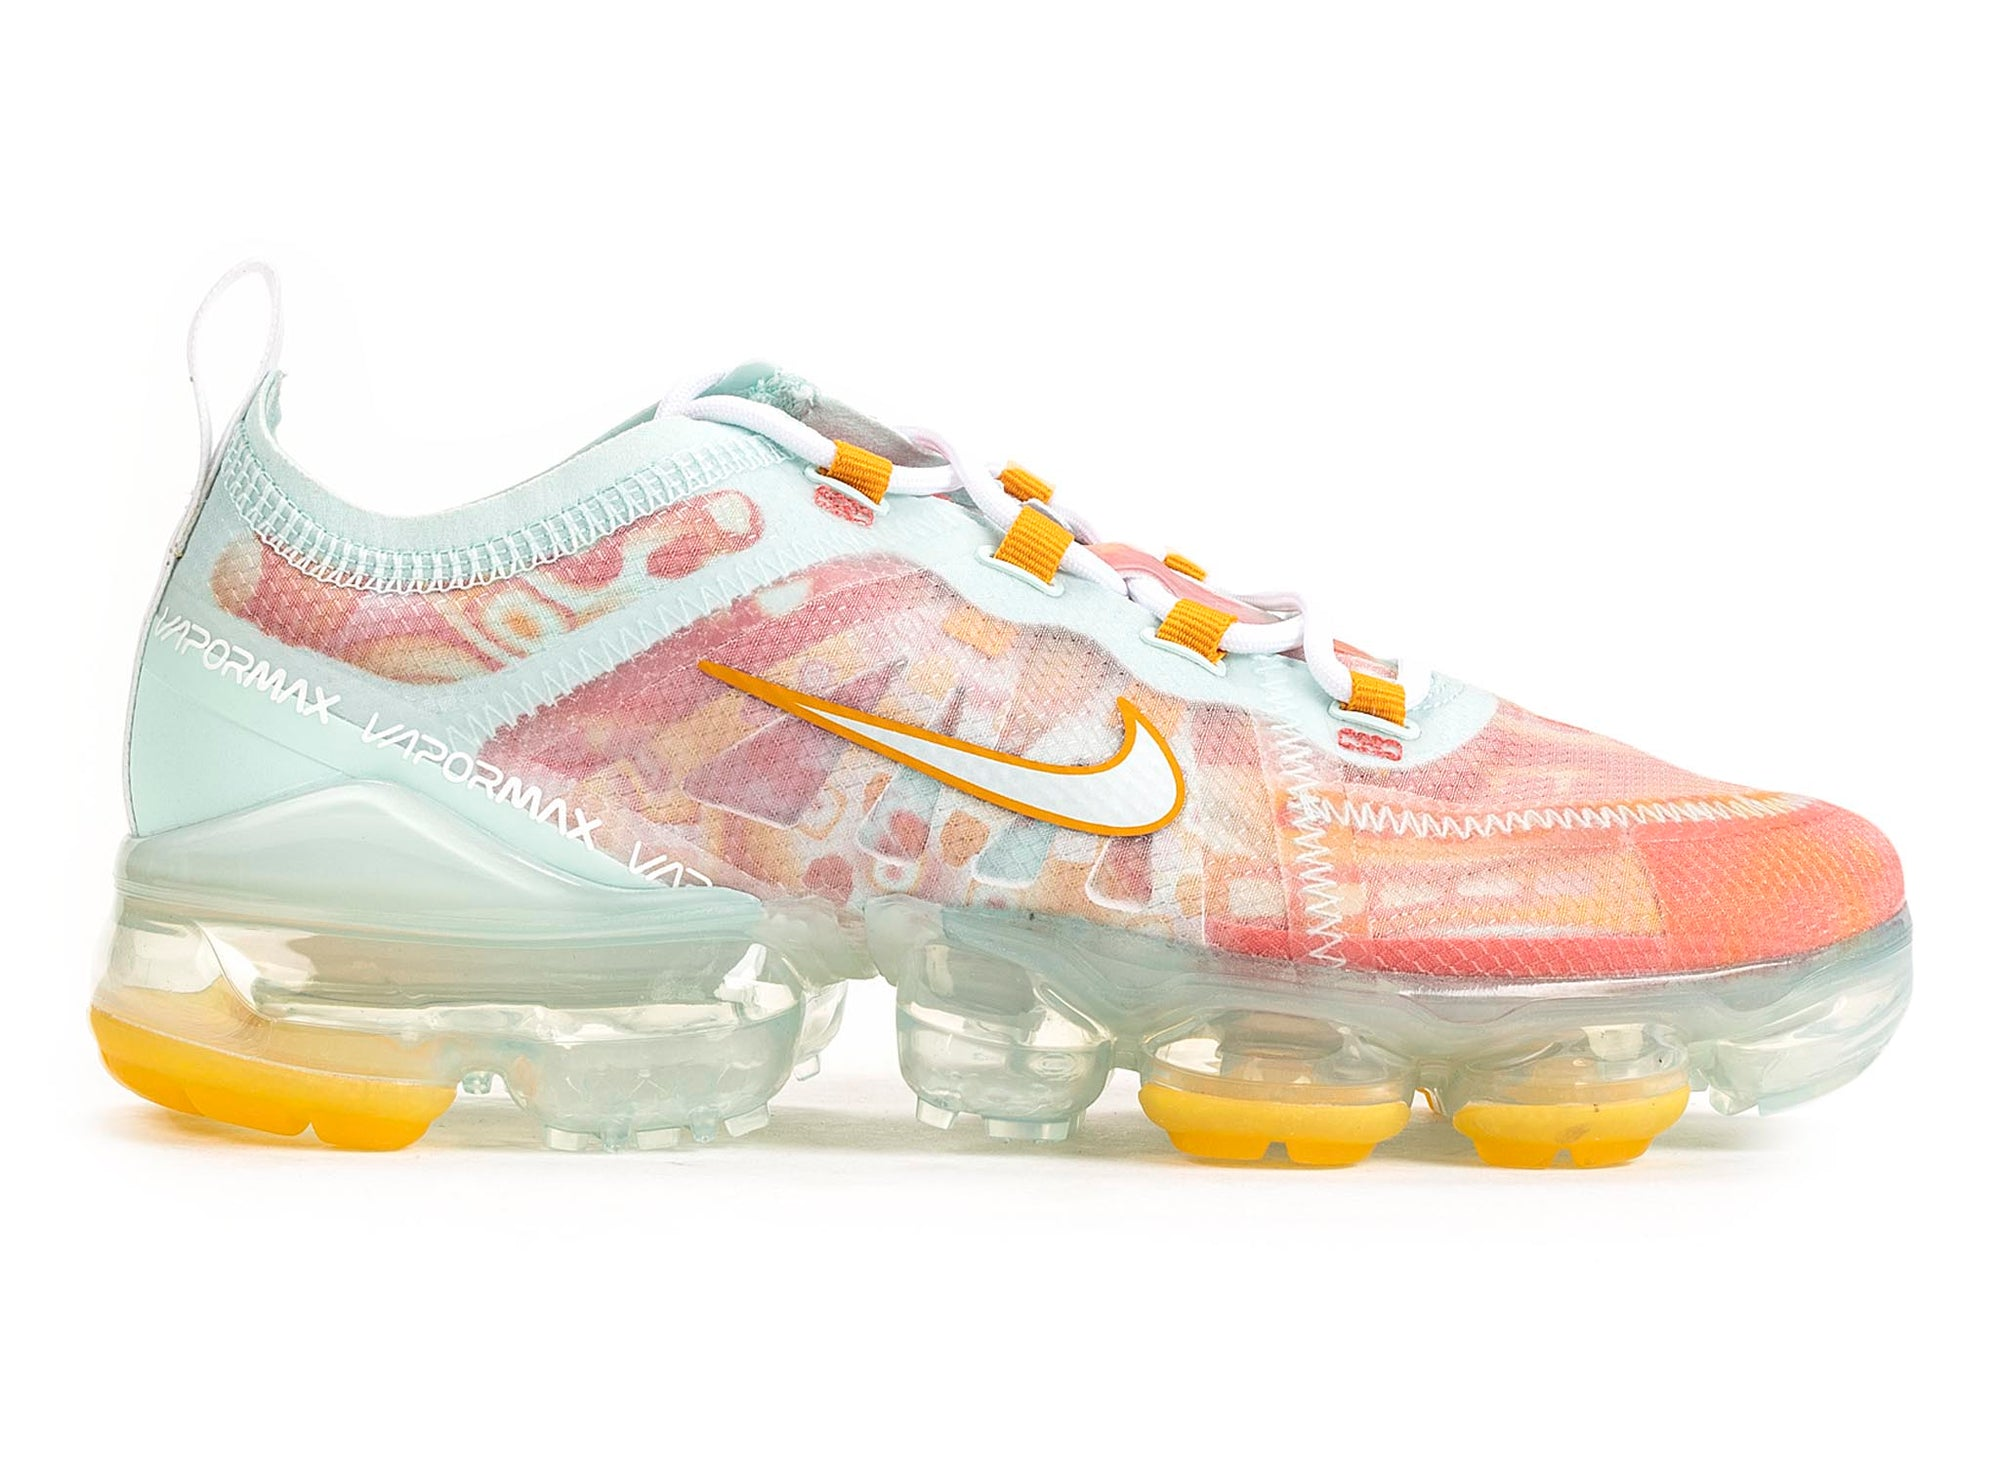 sale retailer b72e0 e1e45 Women's Nike Vapormax 2019 QS 'Dip Dyed Orange Peel'